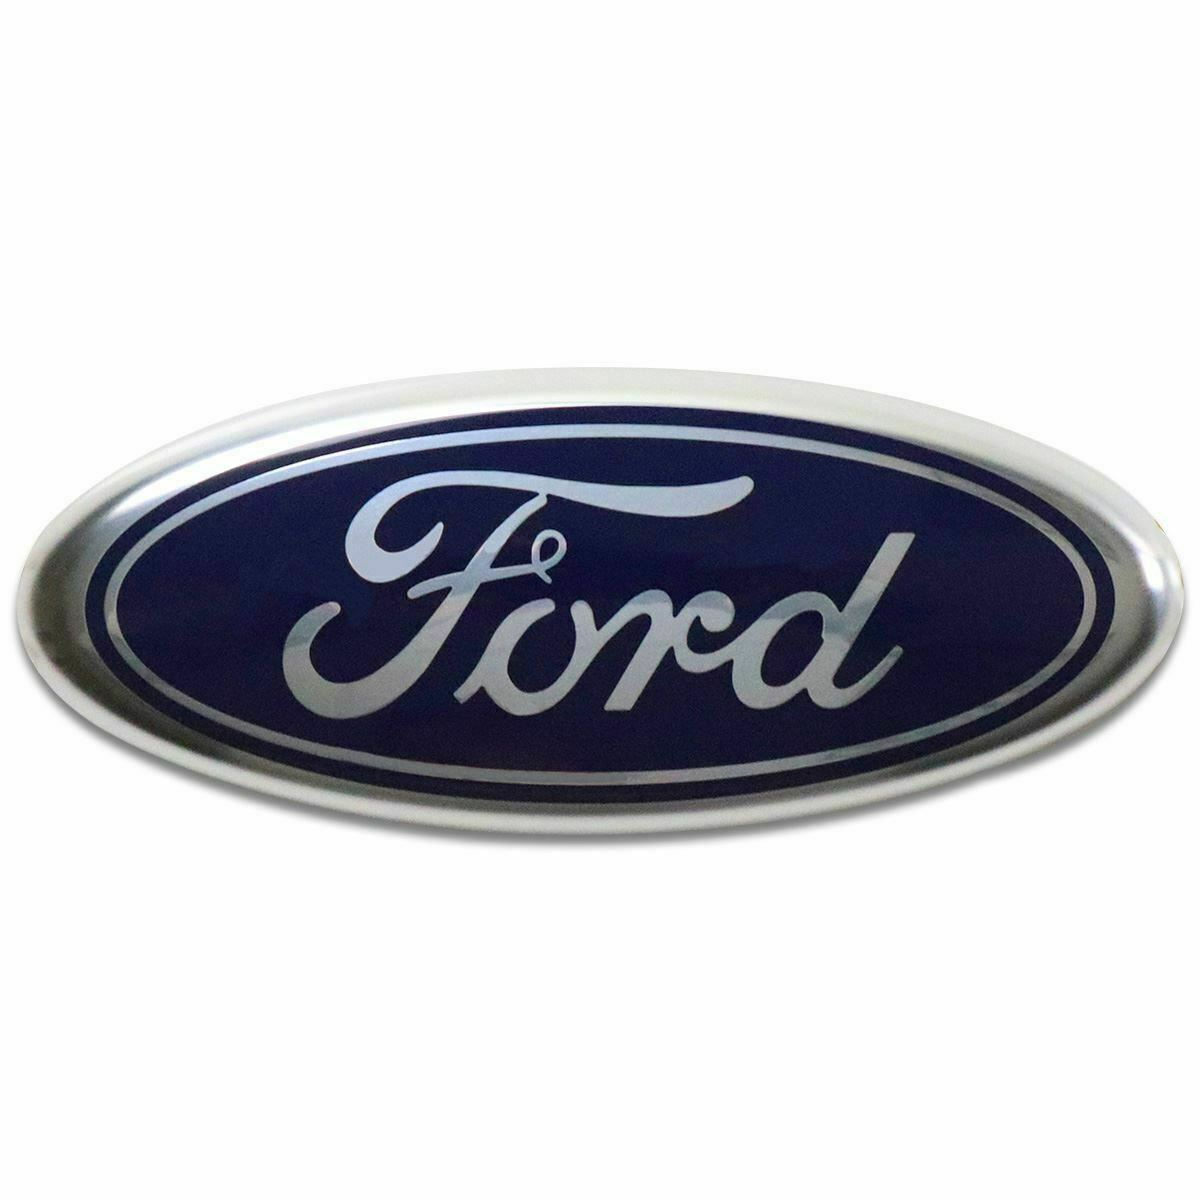 Genuine Ford Ka Oval Rear Tailgate Badge Emblem 1542421 Fuse Box Lights 1 Of 4only 5 Available